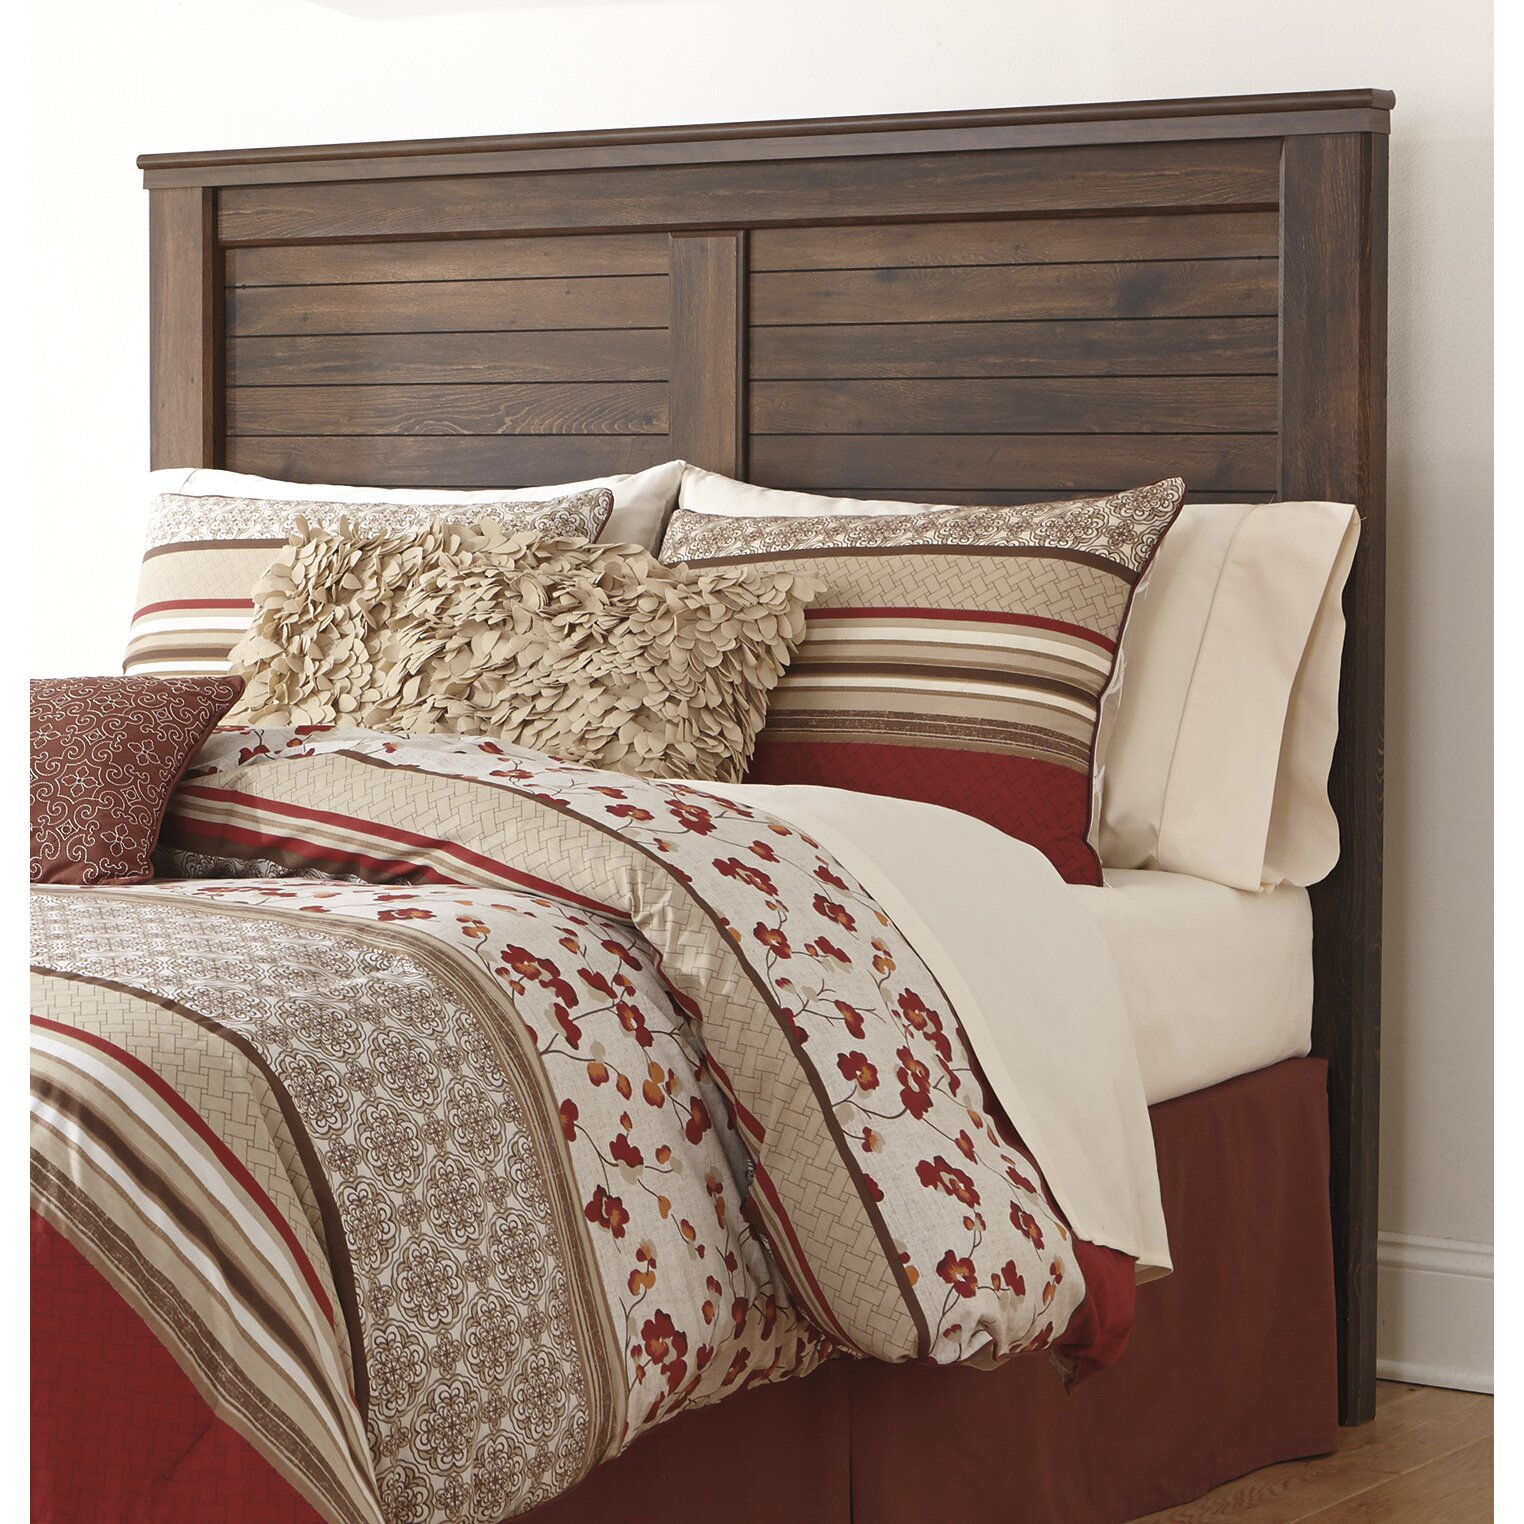 Loon Peak Flattop Wood Headboard Amp Reviews Wayfair